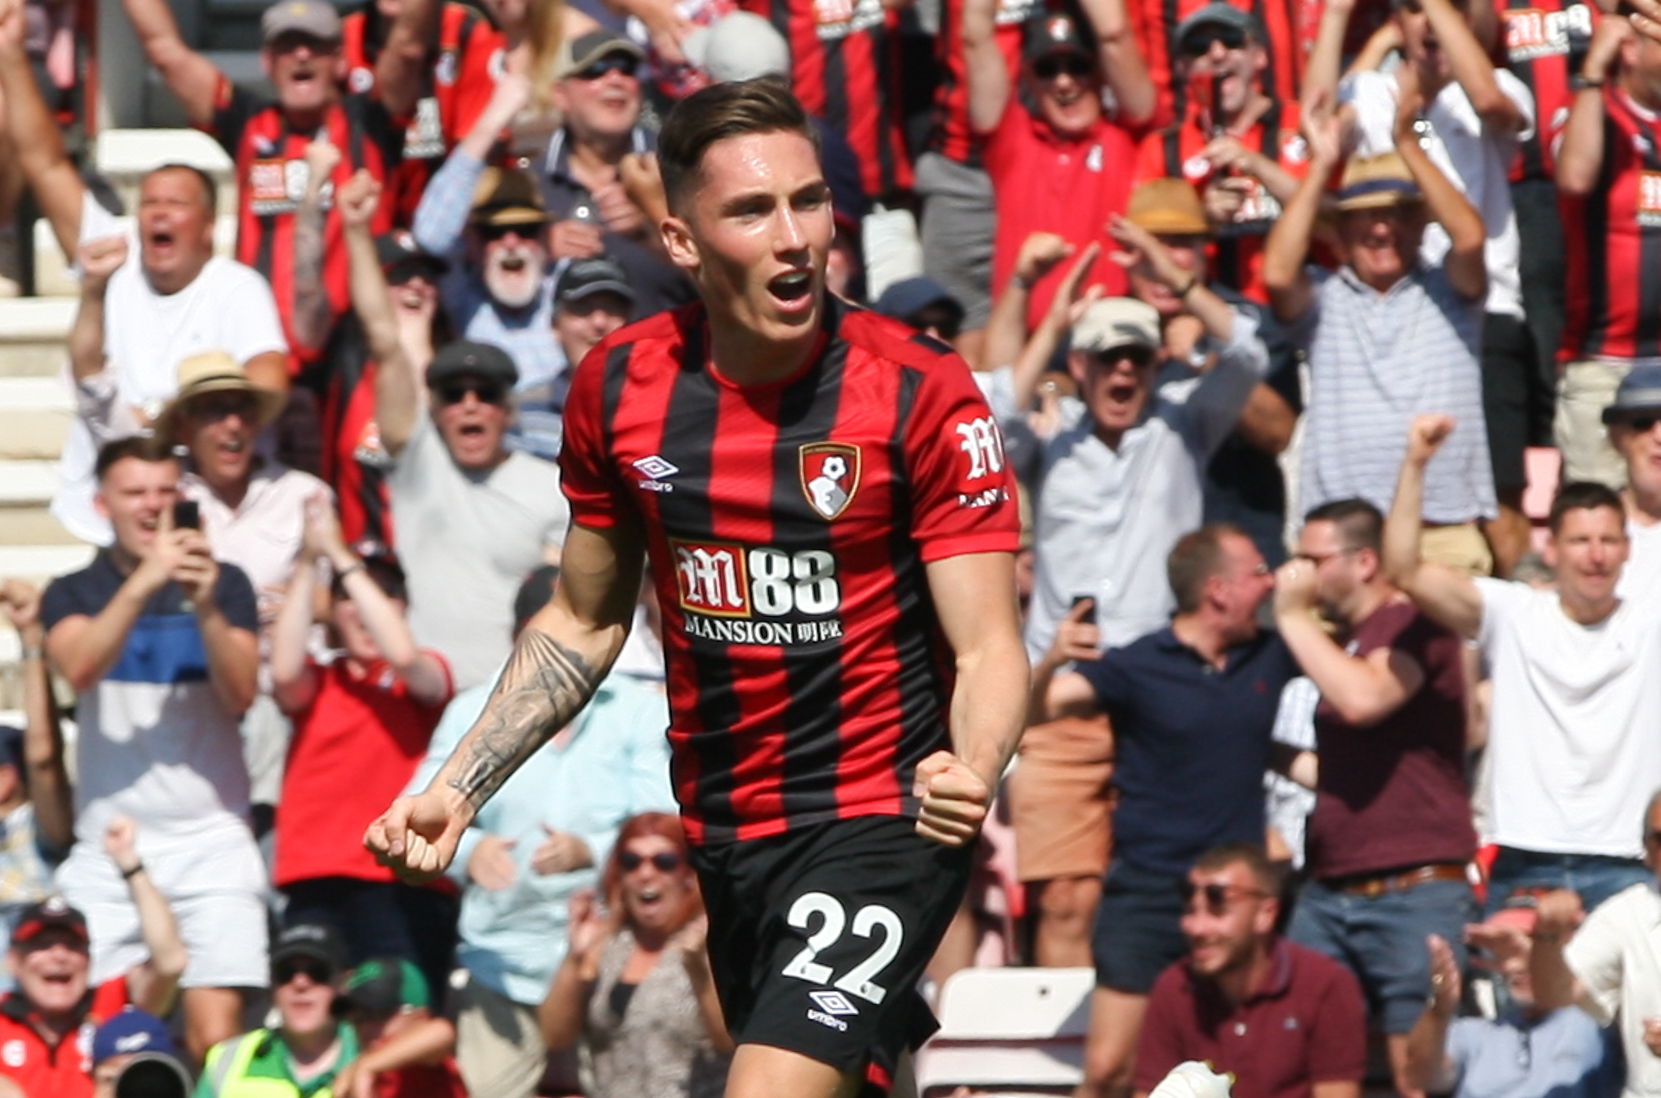 'He's not been fazed at all' - Eddie Howe hails Liverpool loanee Harry Wilson's adaptation to the Premier League with AFC Bournemouth